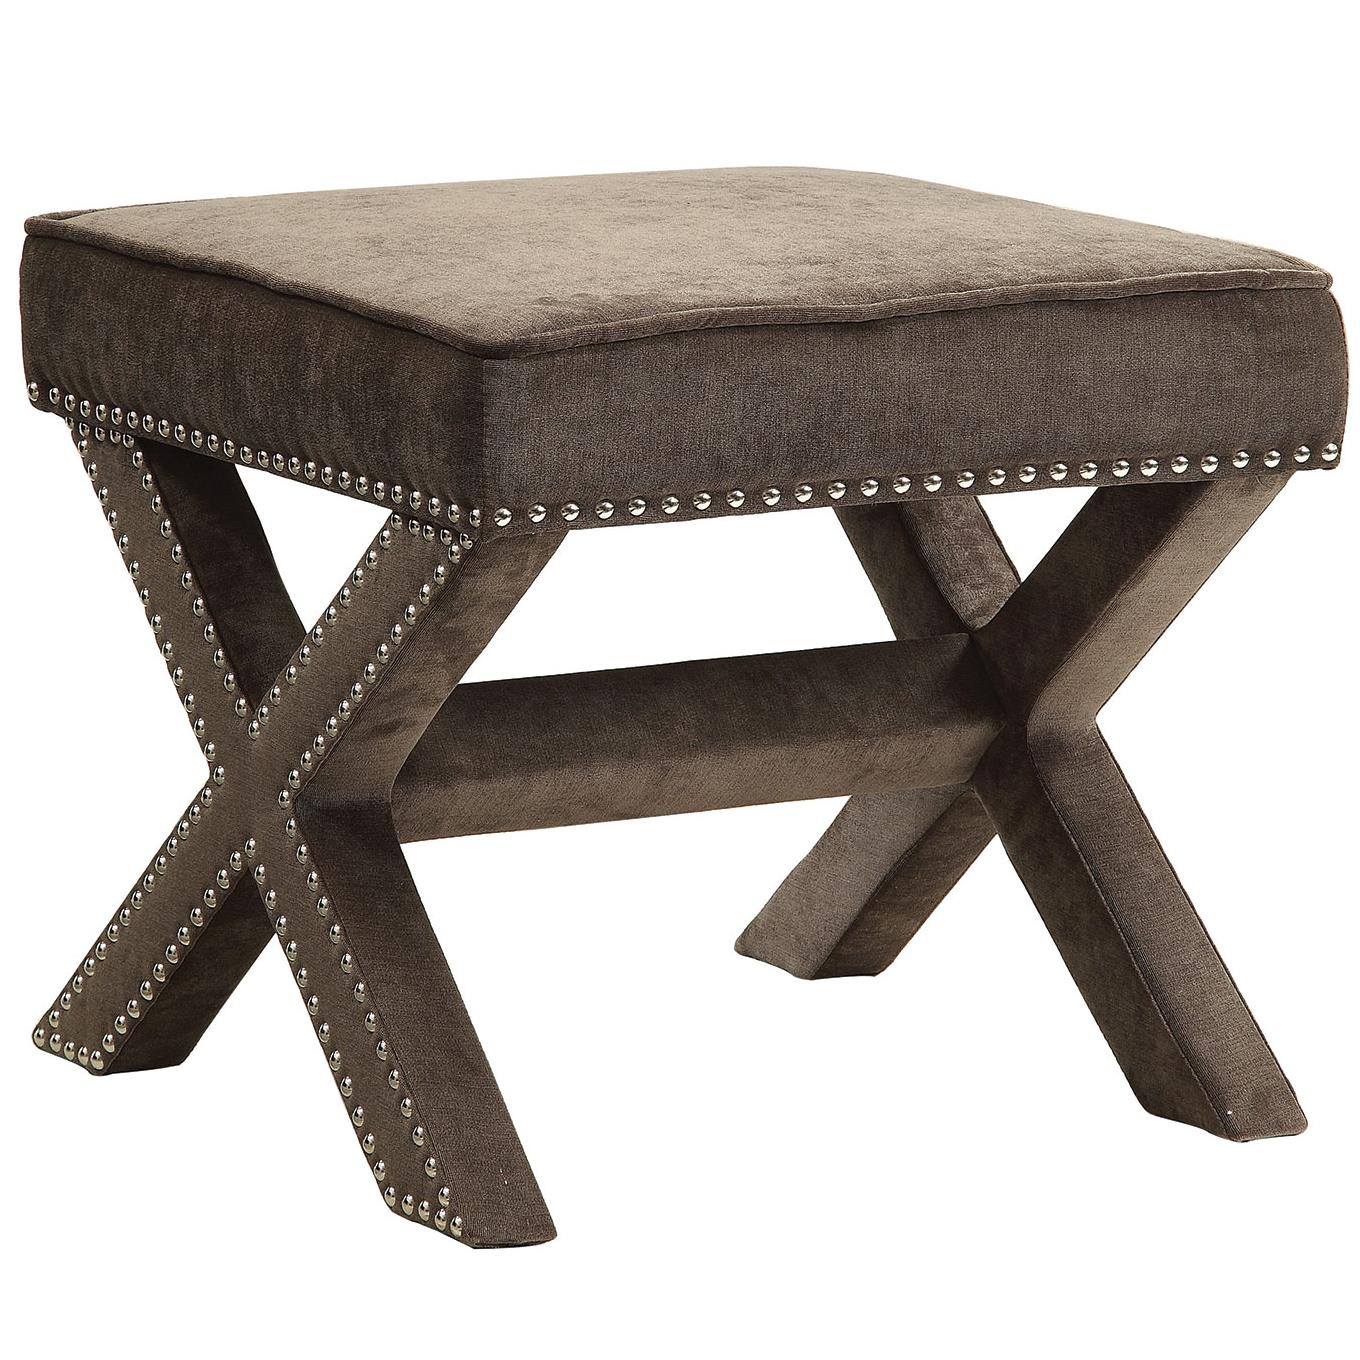 Coaster Ottomans Ottoman - Item Number: 500419